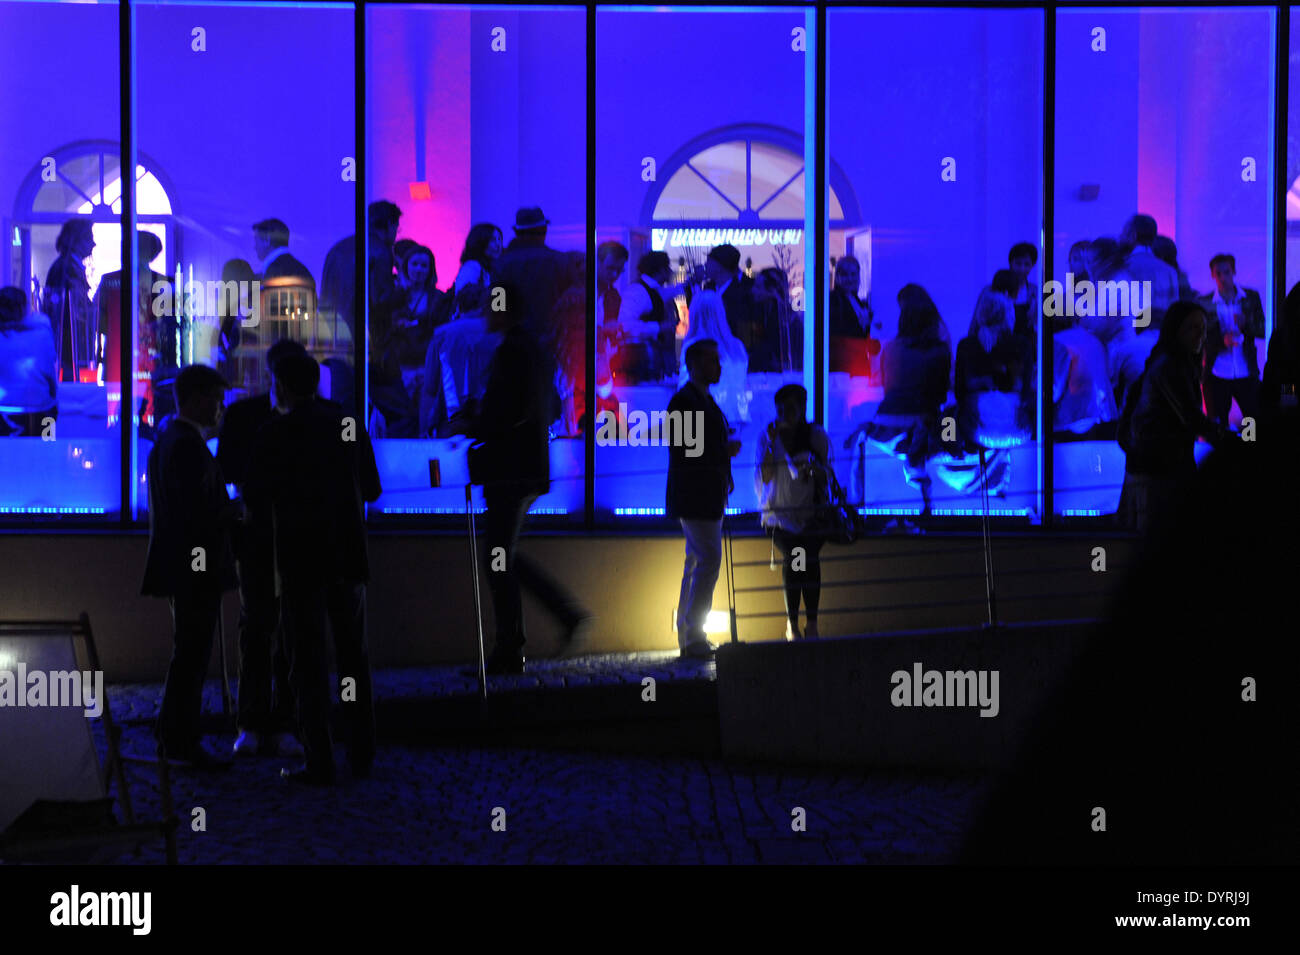 Tele 5 Party at the Munich Film Festival, 2011 - Stock Image